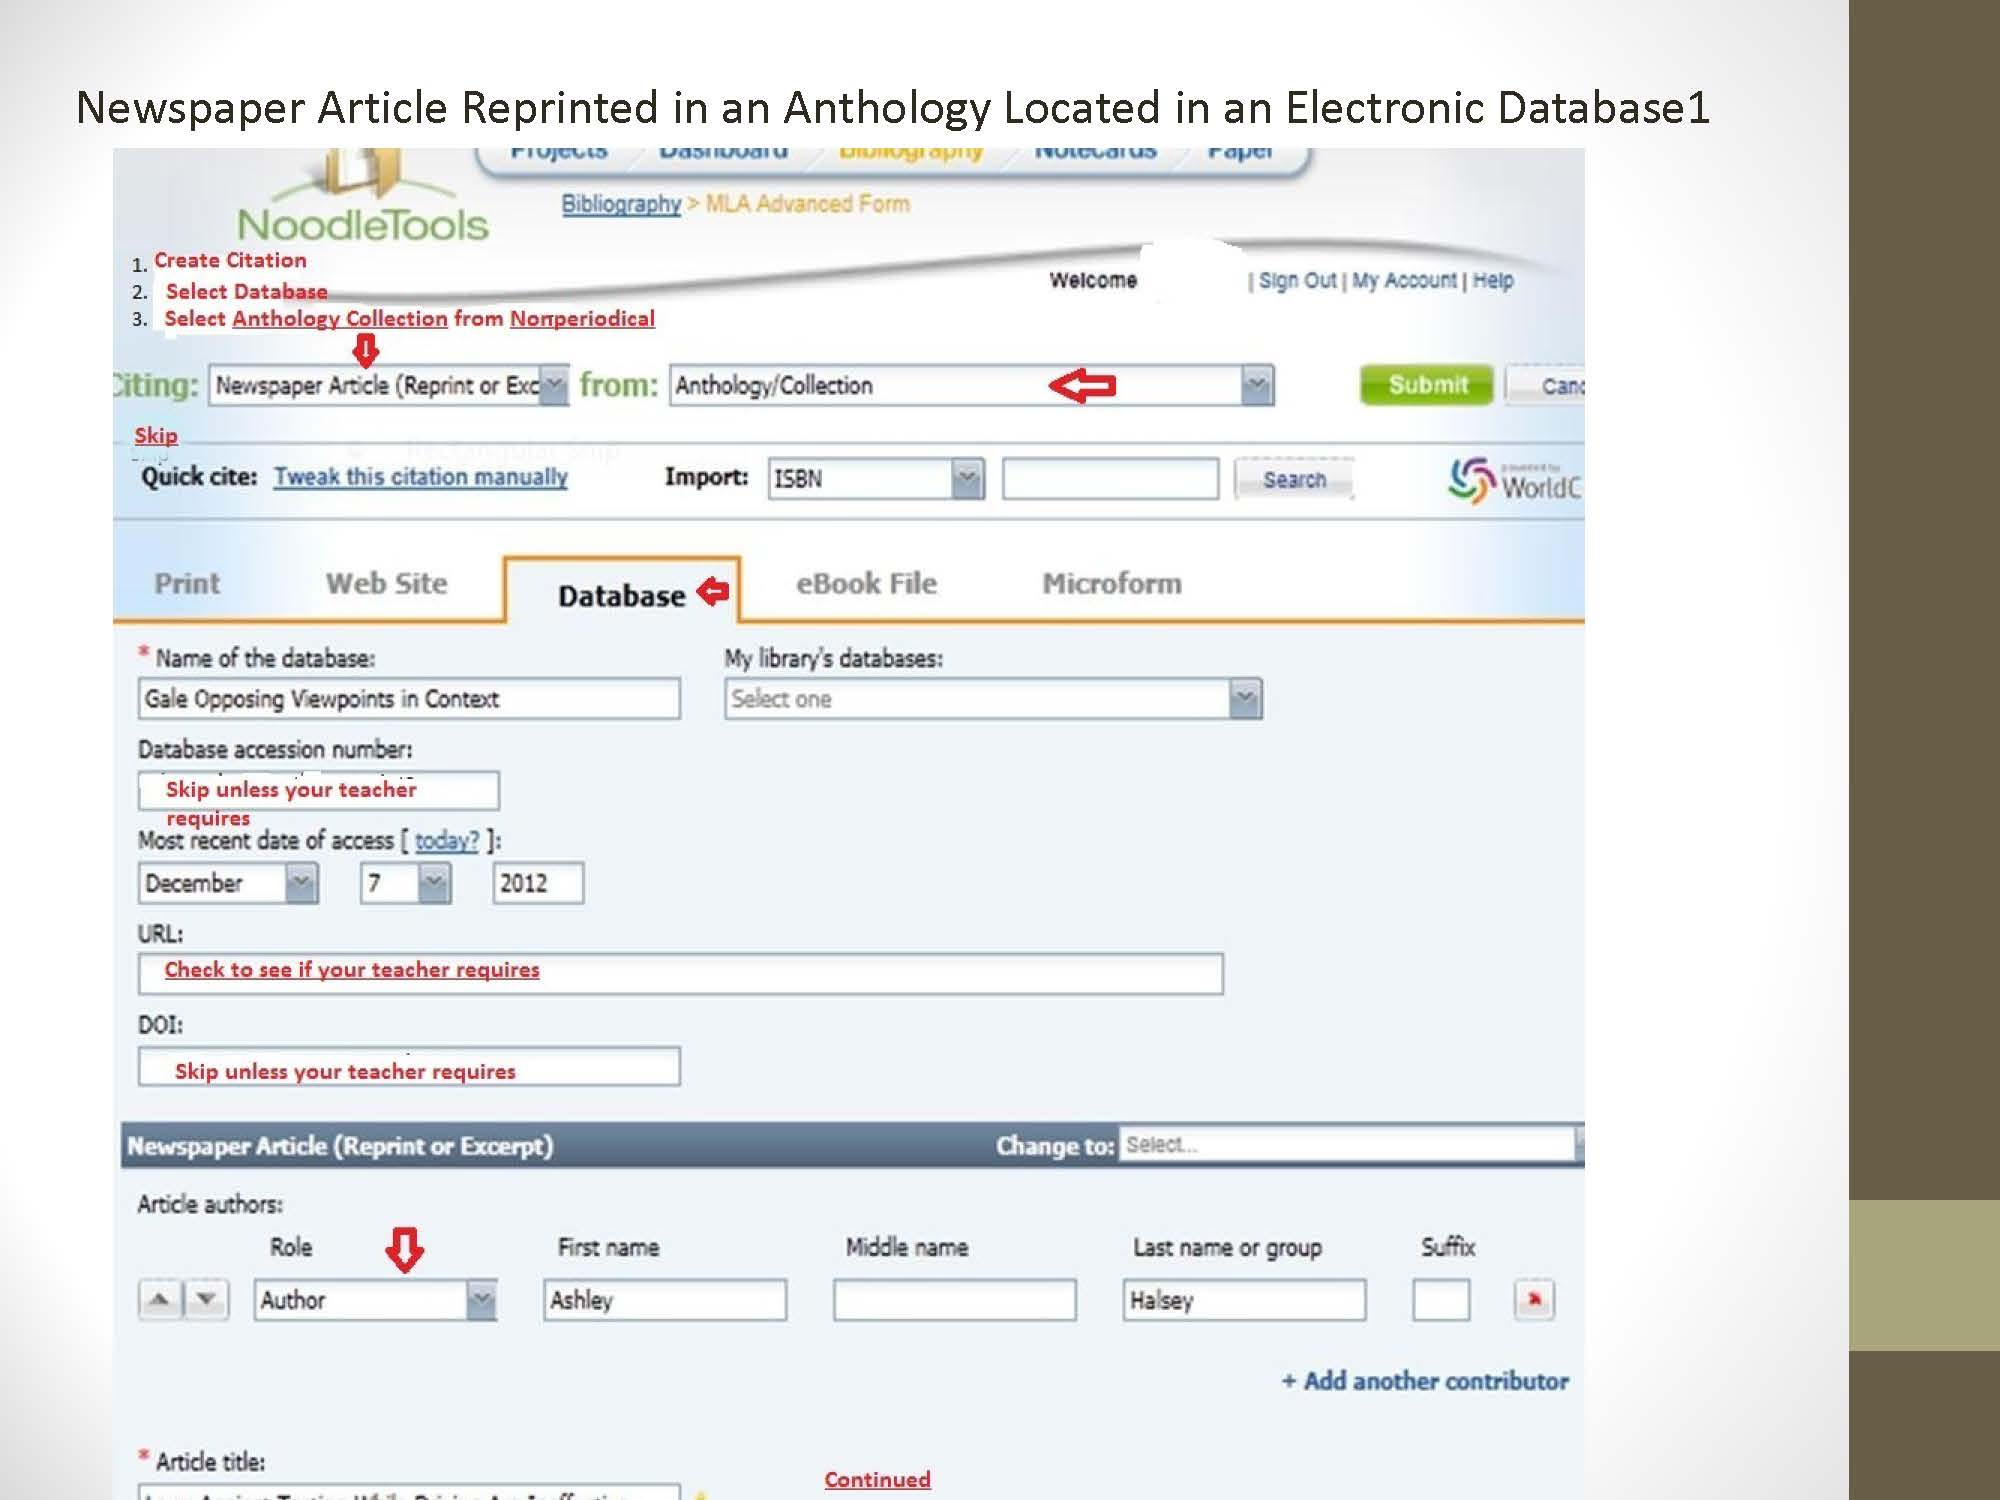 Citing Newspaper Article in an Anthology, located within an Electronic Database